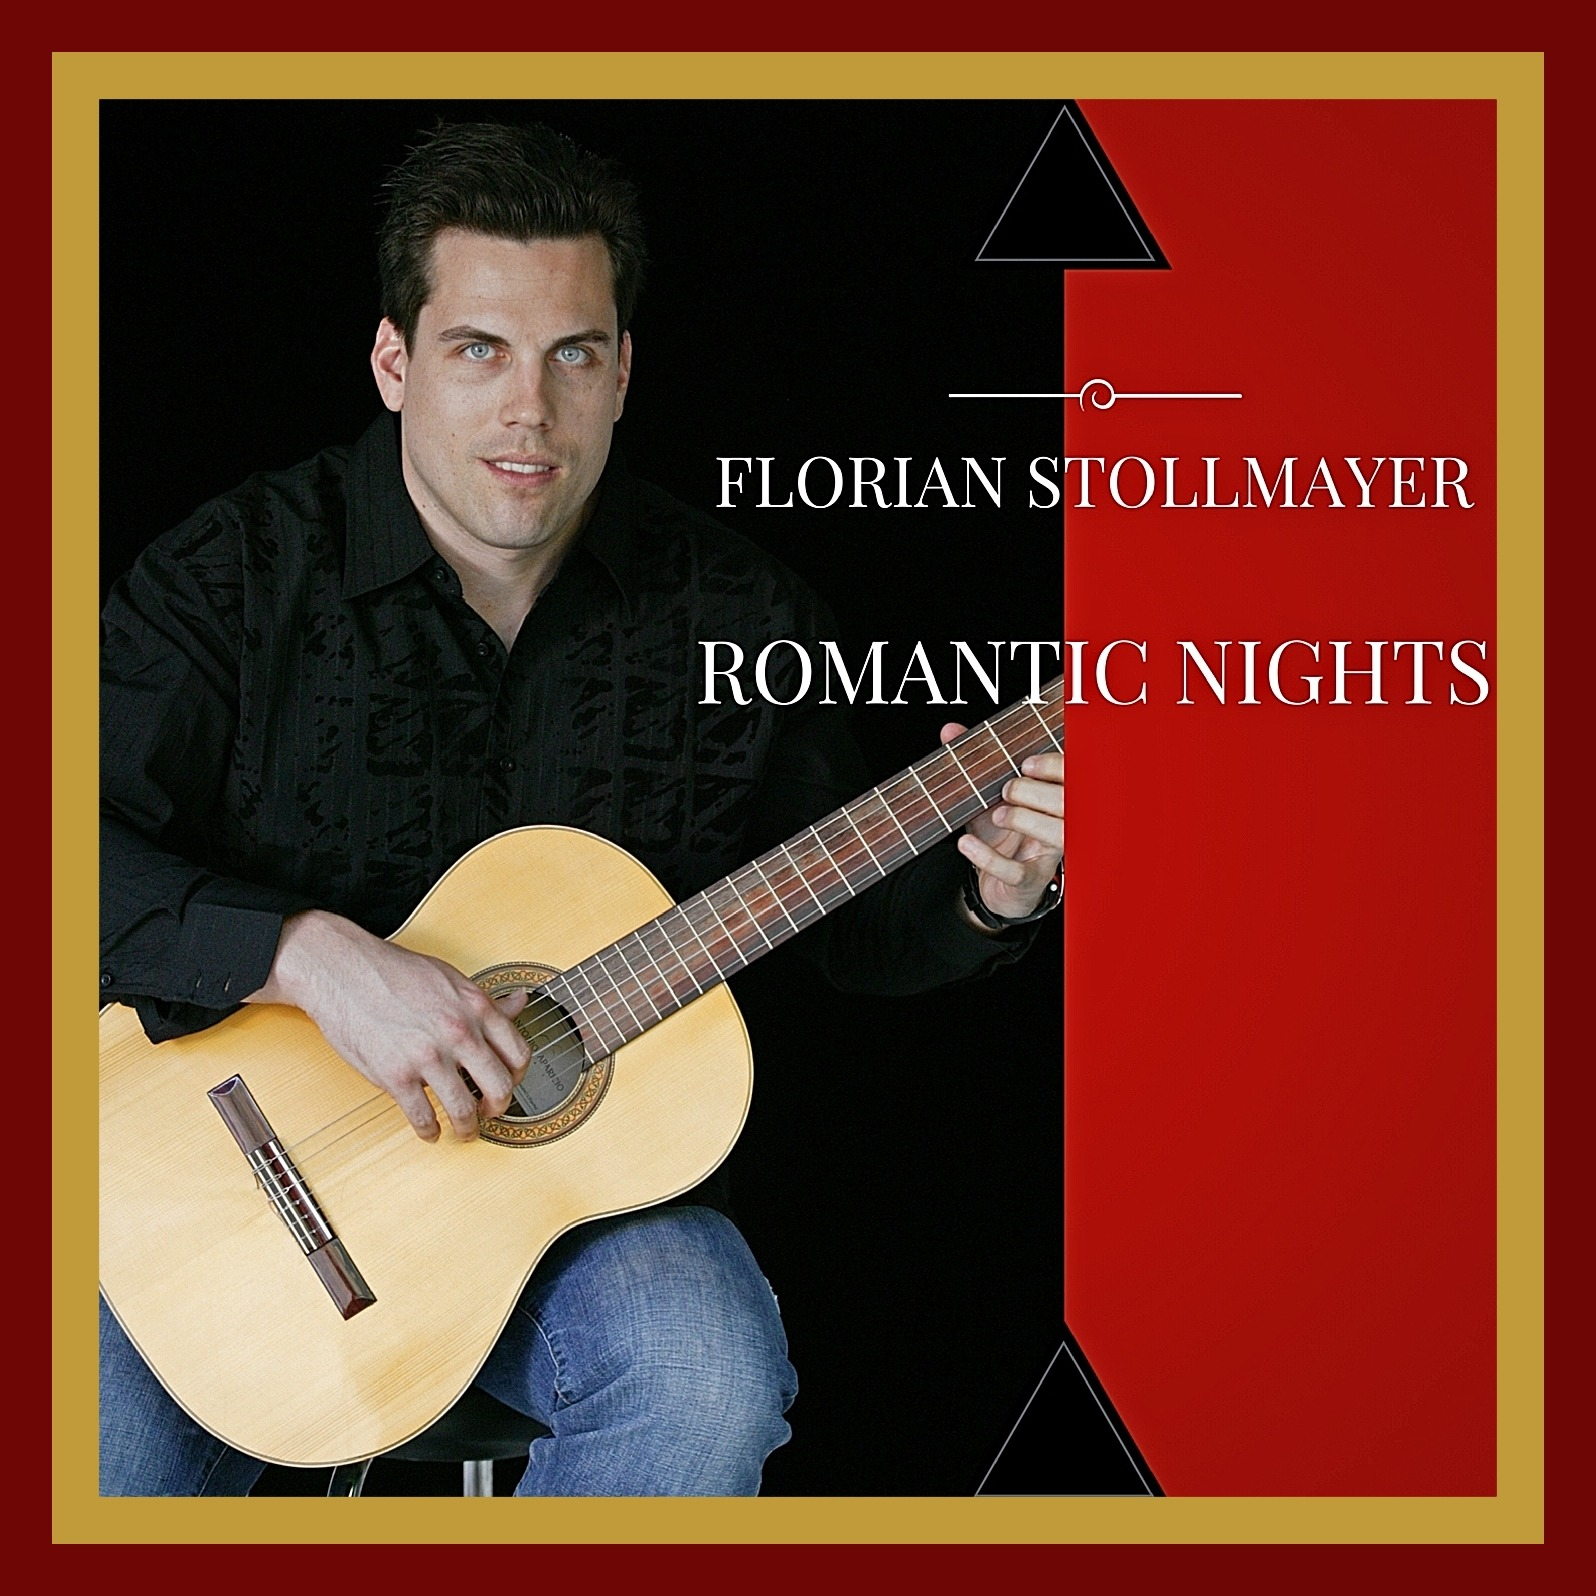 Spanish Romance de Amor by Florian Stollmayer Classical Guitar